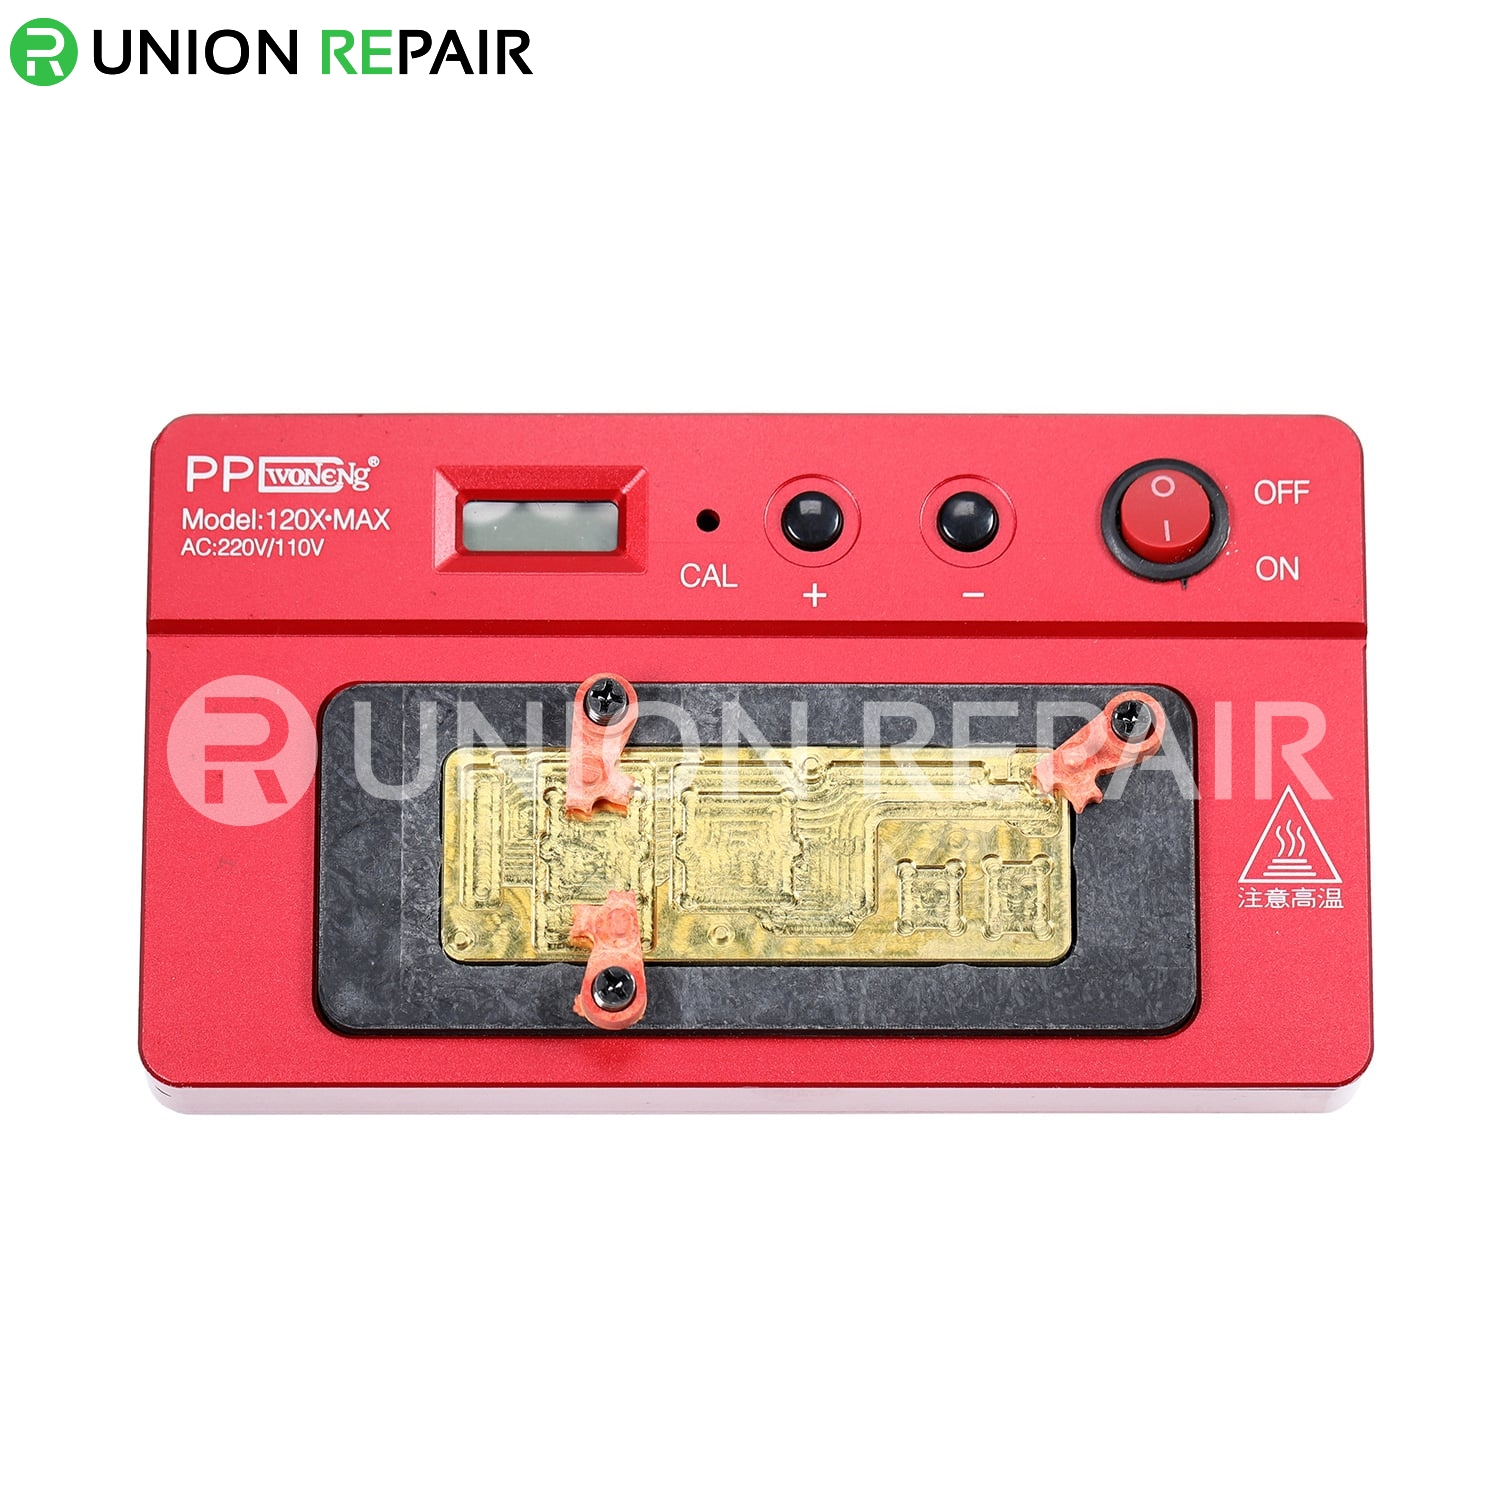 PPD 120X-MAX Double Layers Board Intelligent Welding Platform​ for iPhone X/XS/XSMAX/XR